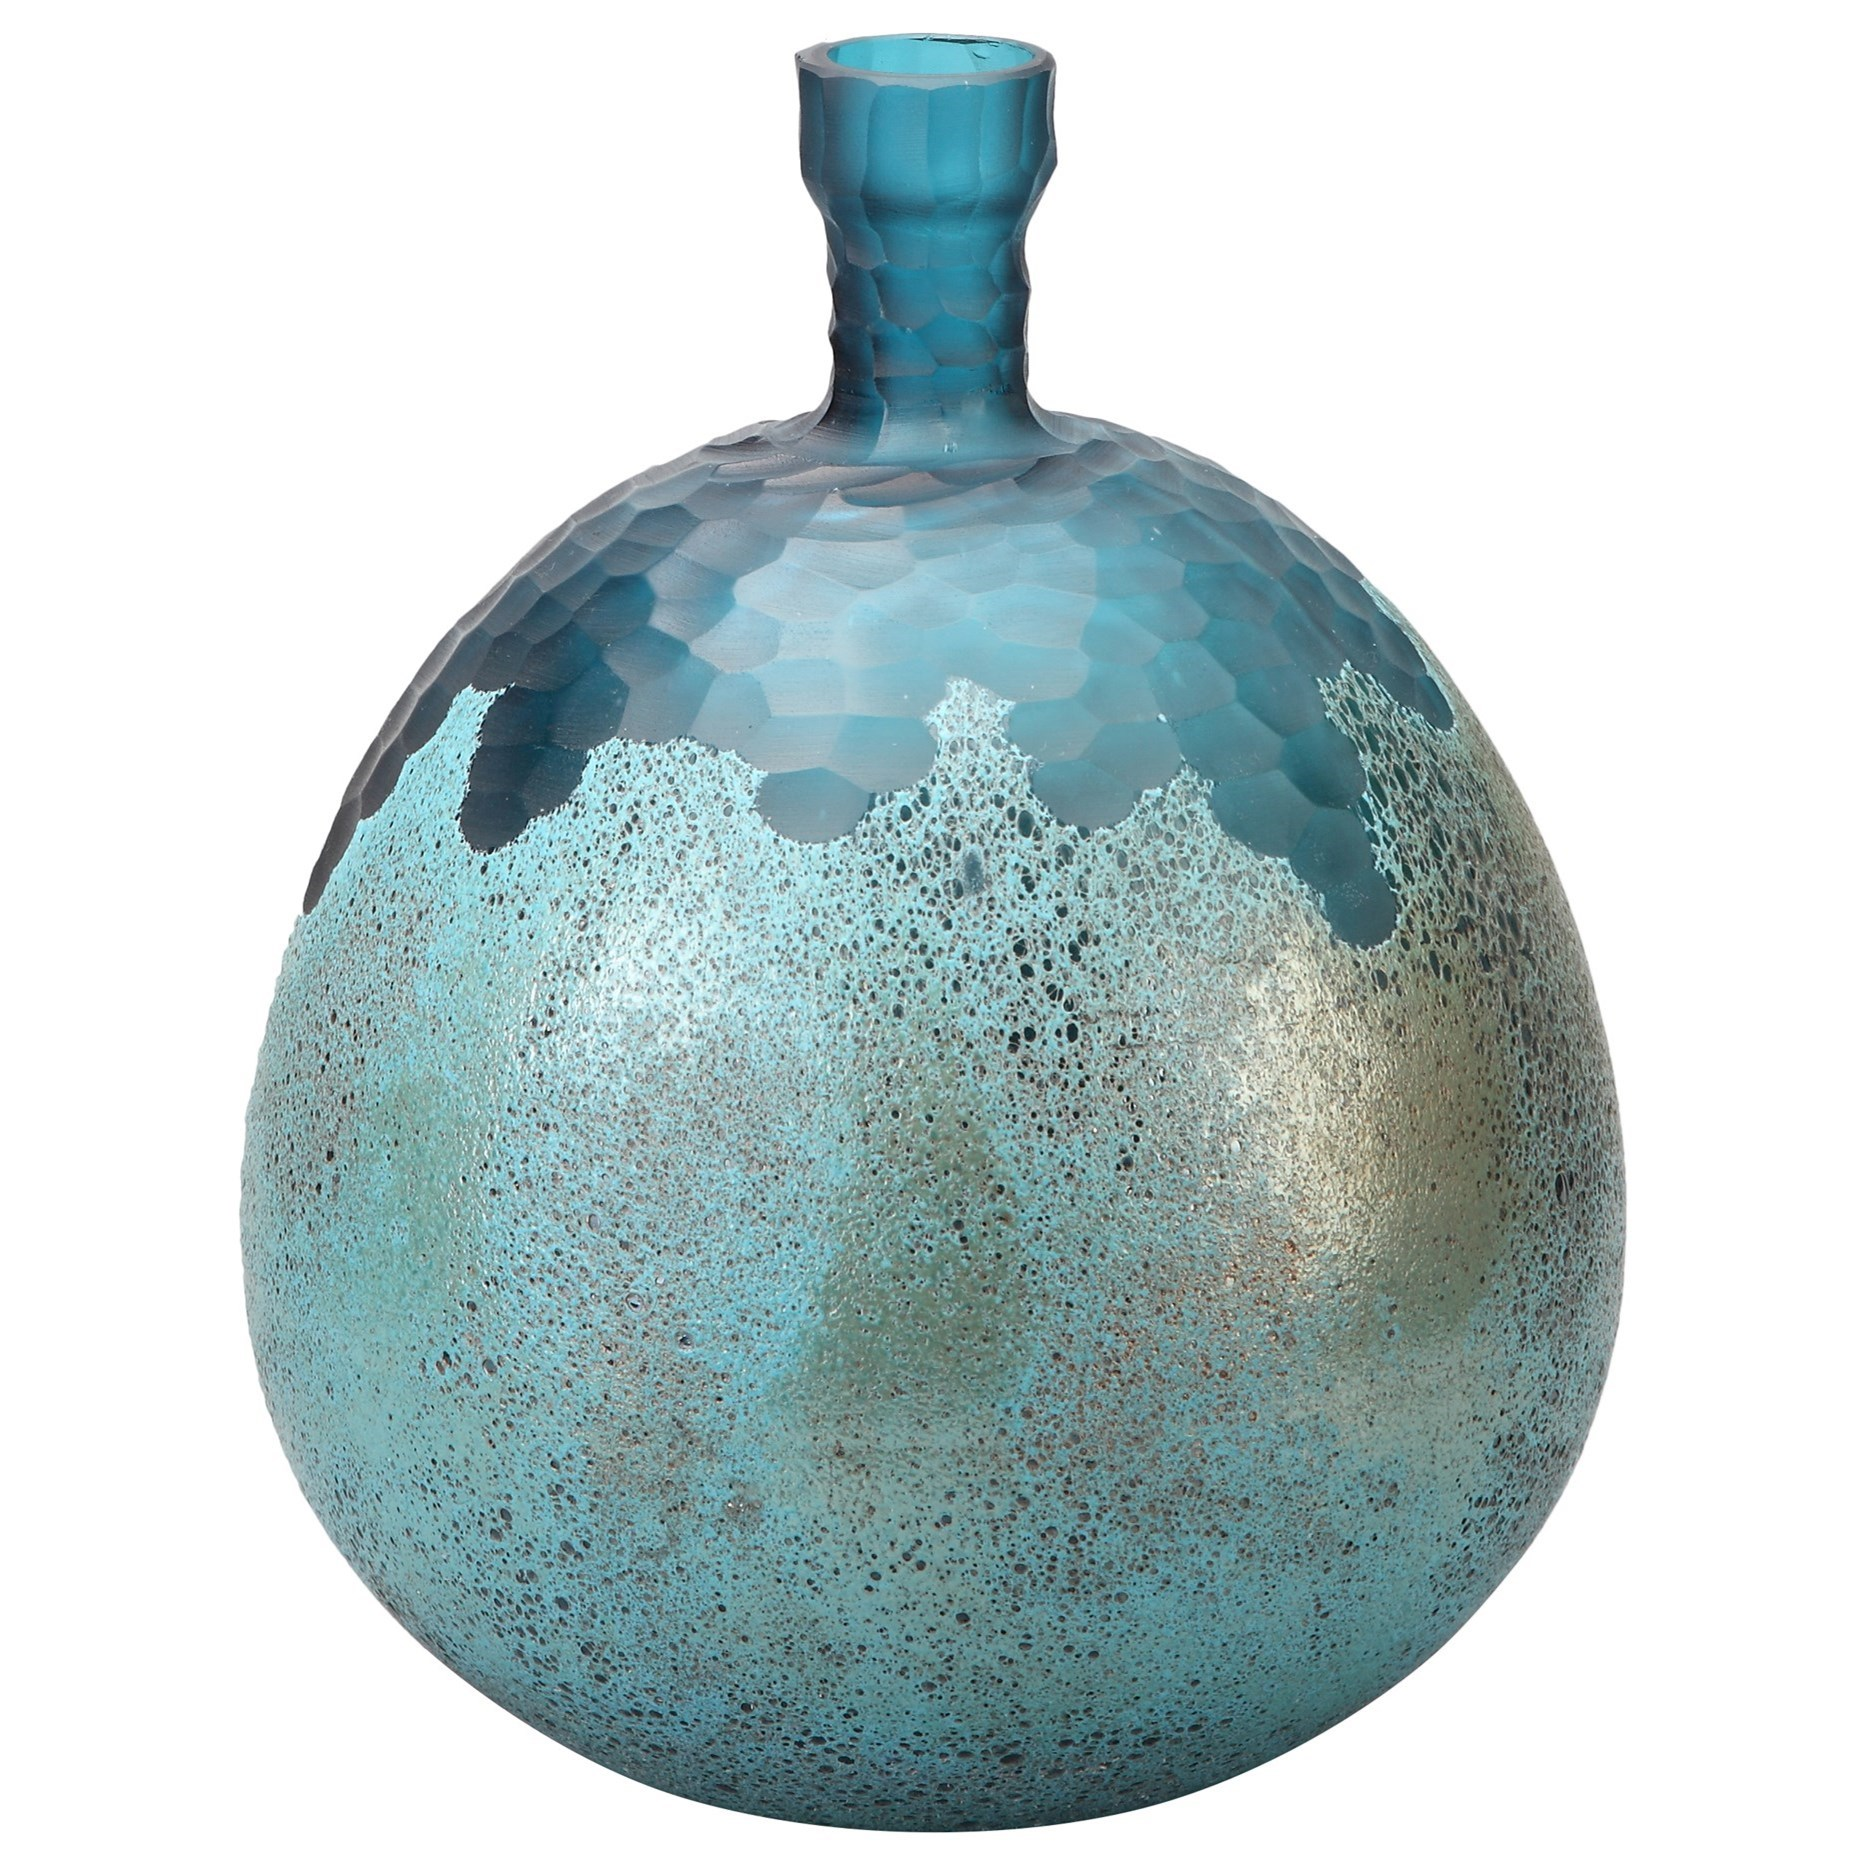 Vases & Urns Nix Vase Blue by Moe's Home Collection at Stoney Creek Furniture